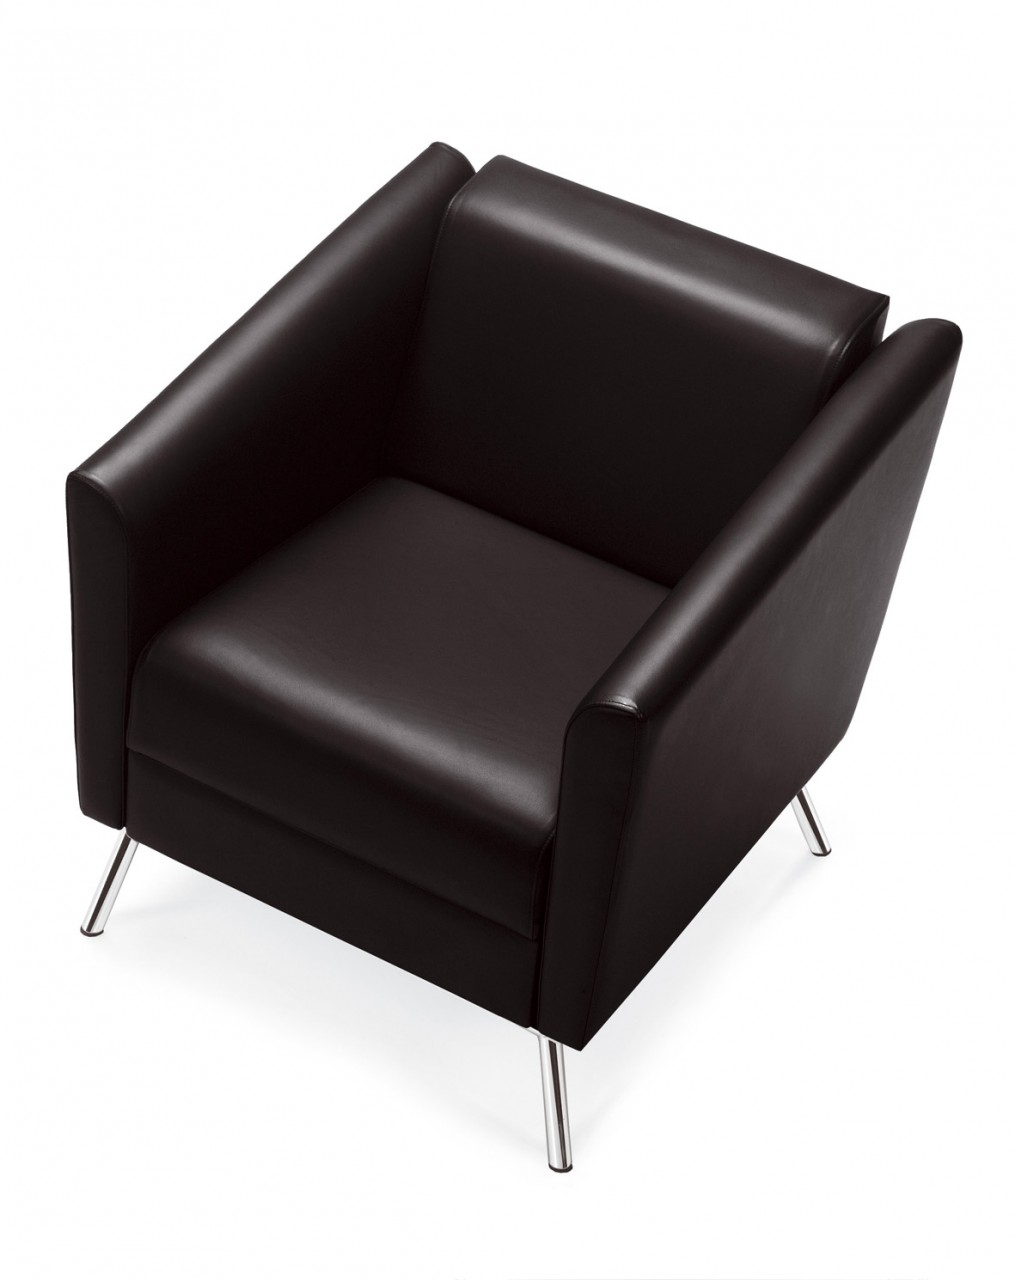 chauffeuse wind achat fauteuils 490 00. Black Bedroom Furniture Sets. Home Design Ideas